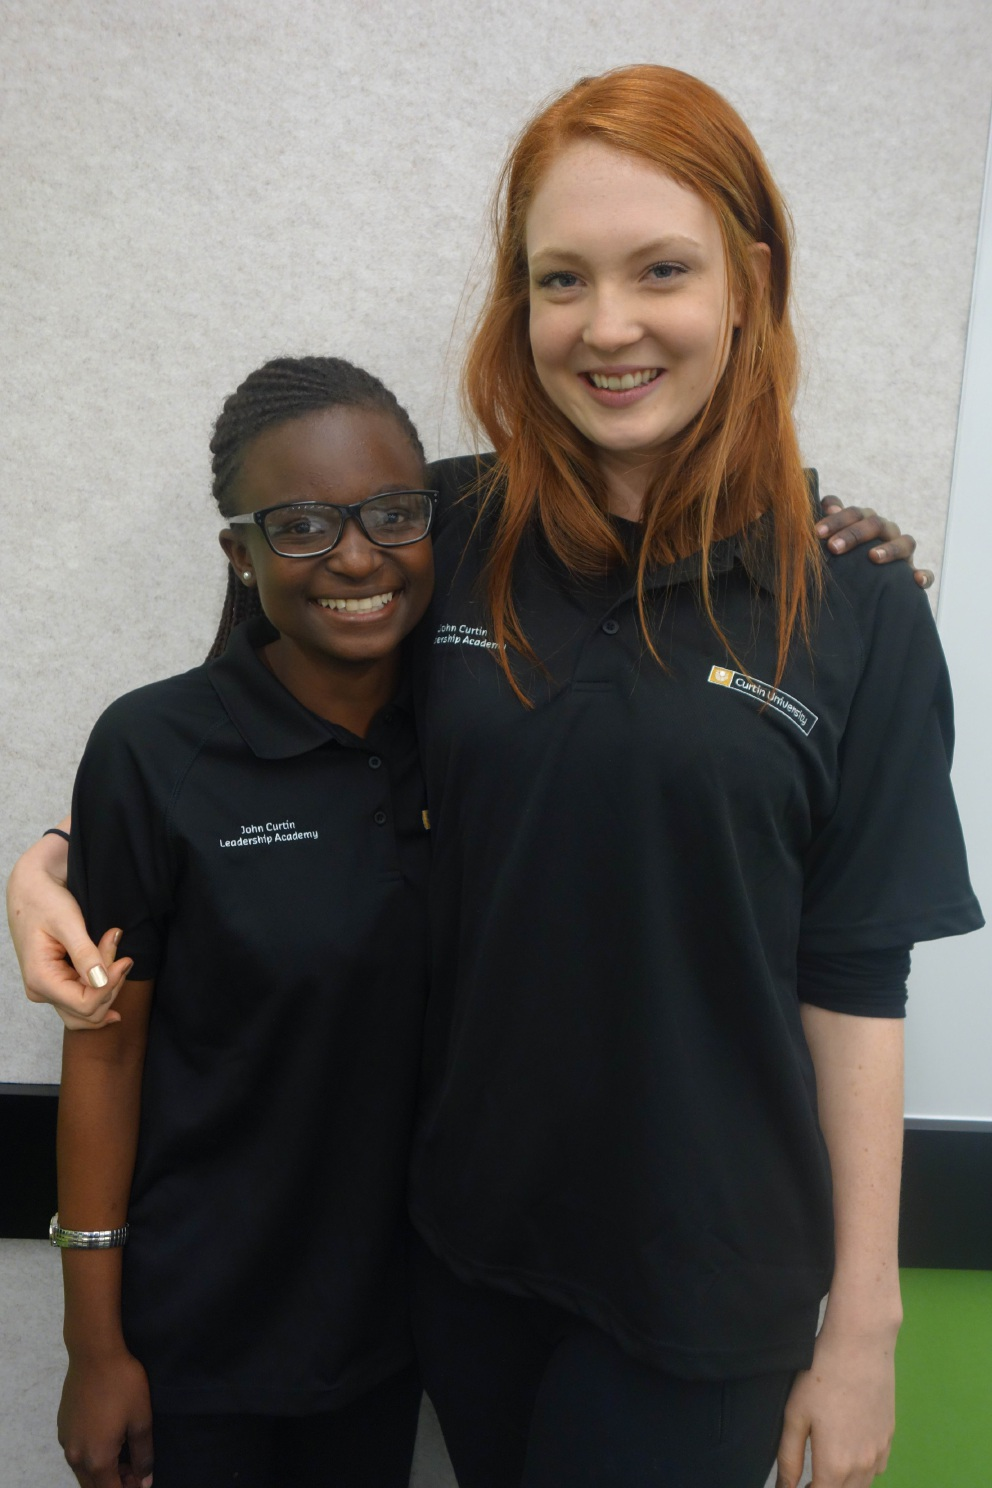 Sarah Wilson from Marmion and Anesuishe Mtabeni from Butler are part of the John Curtin Leadership Academy.